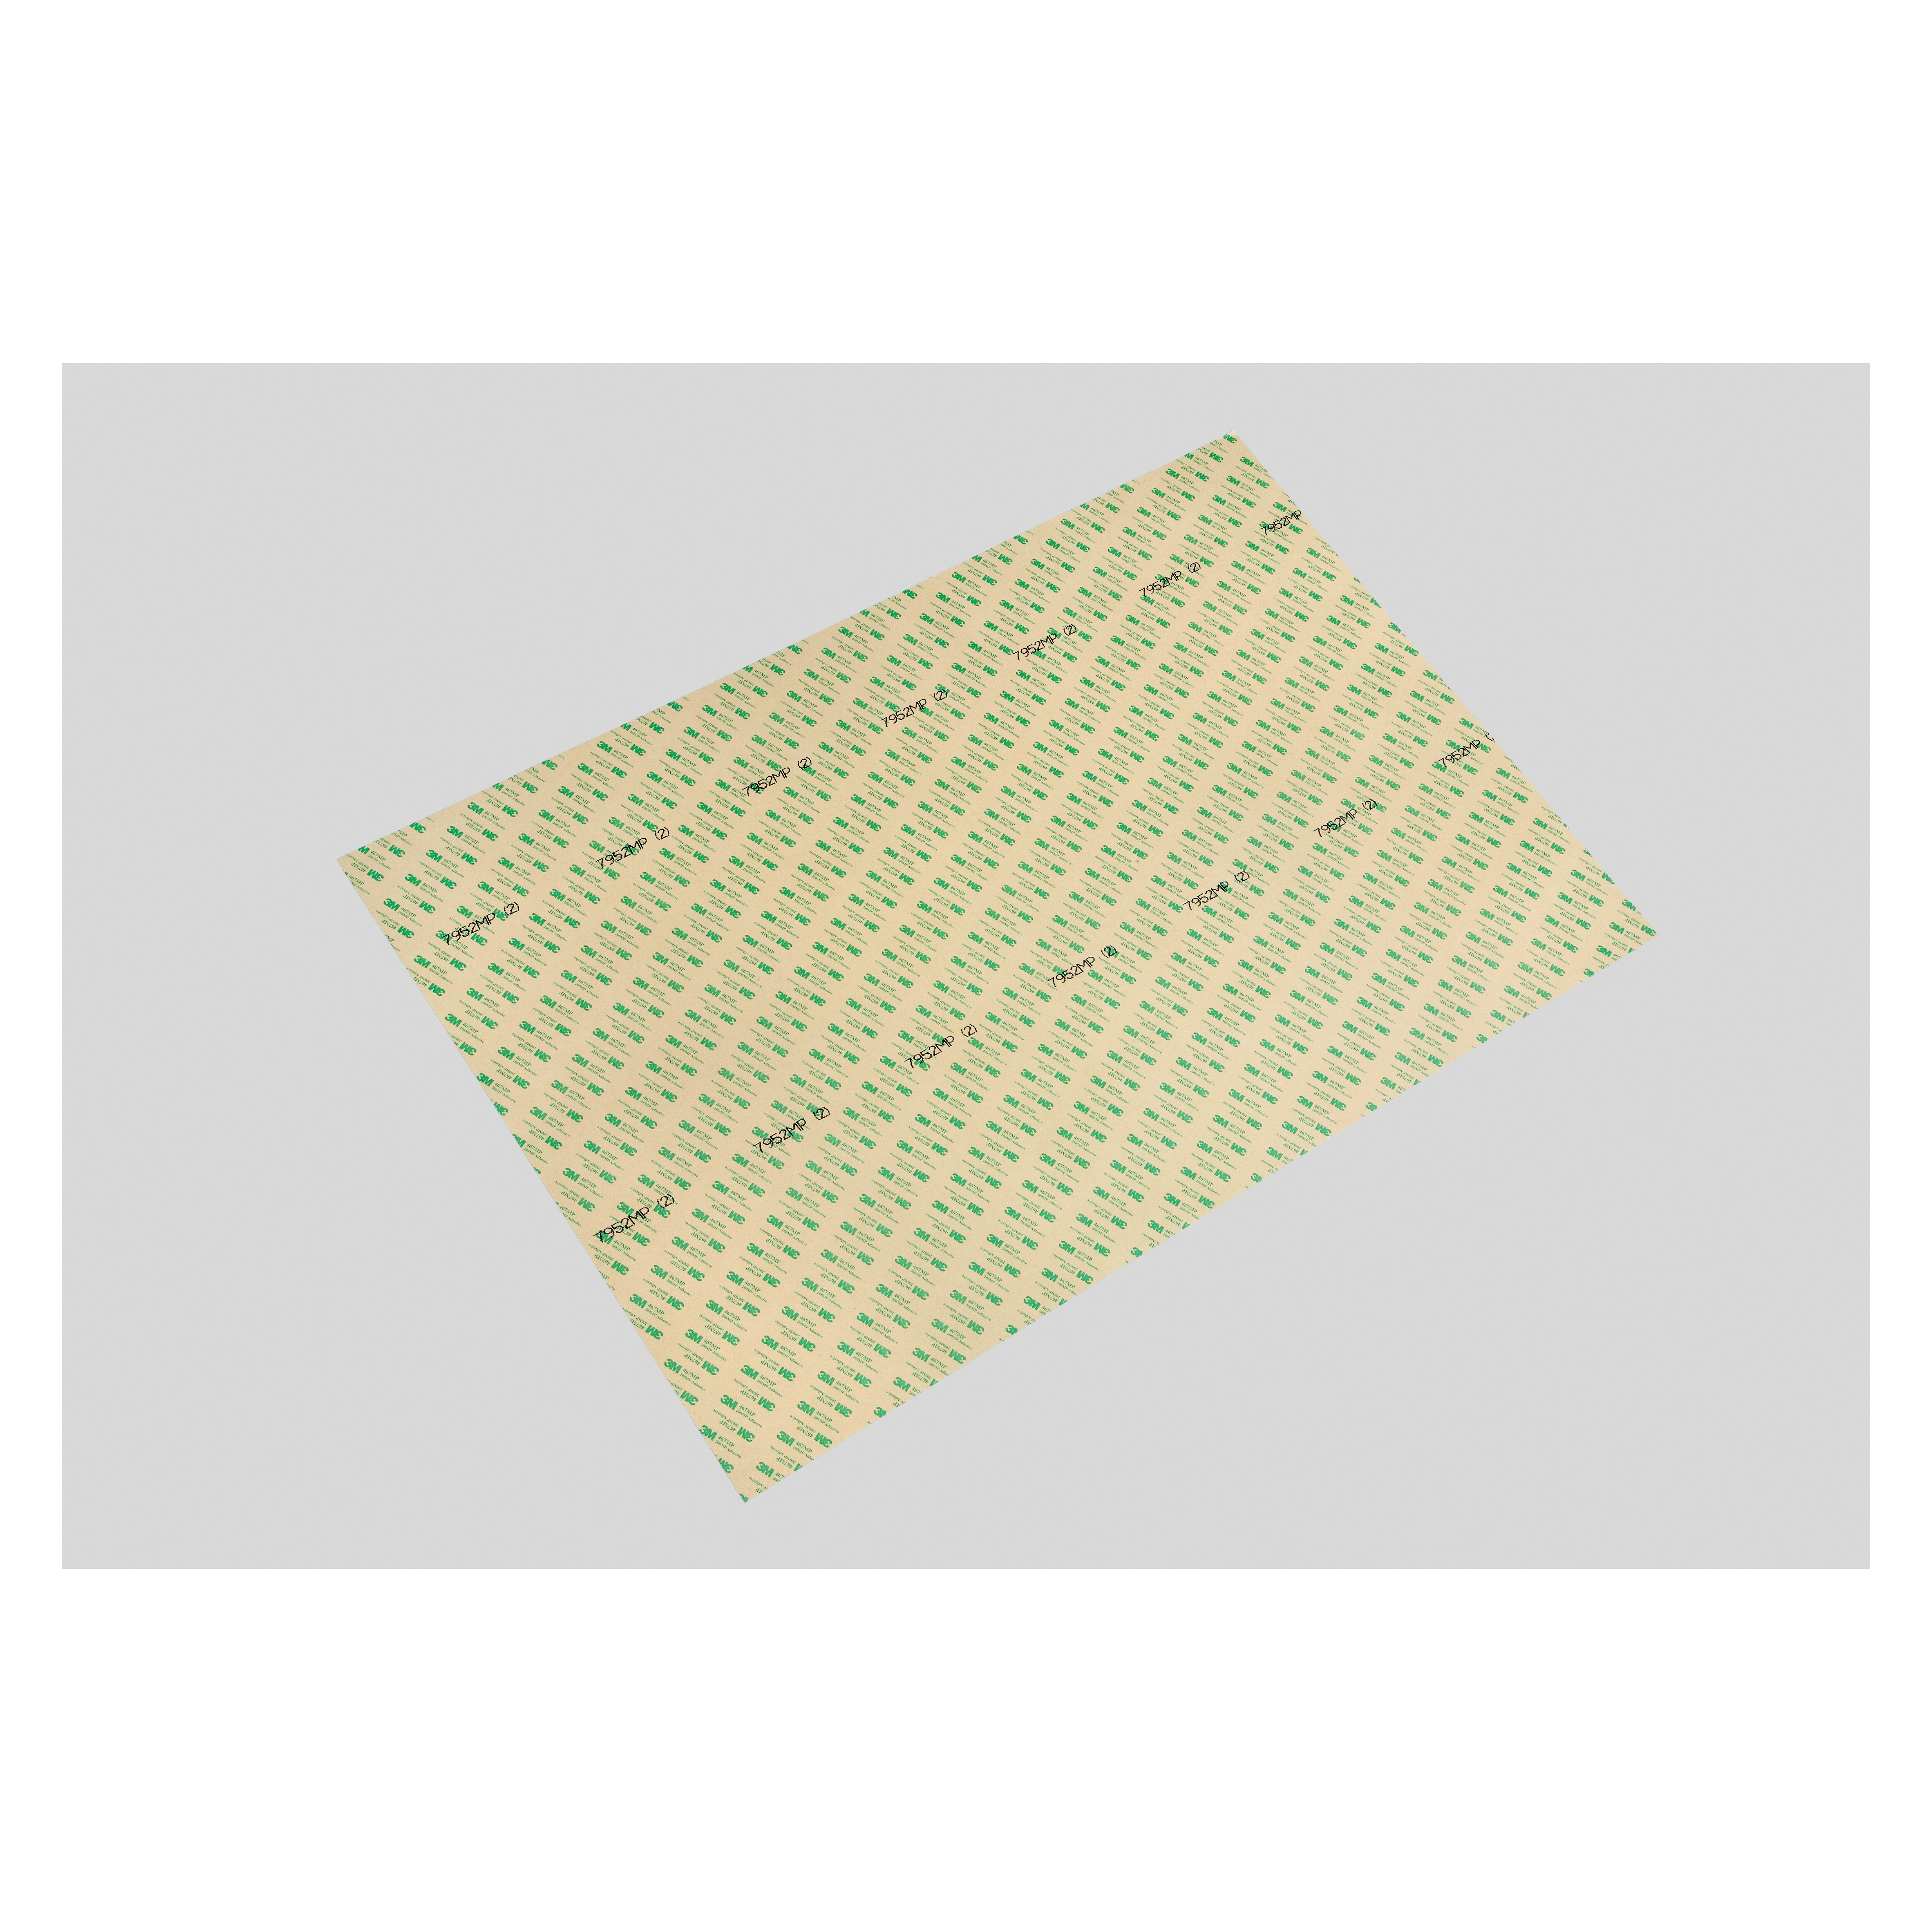 3M™ 021200-18408 Double Linered Medium Tack Adhesive Transfer Tape, 36 in L x 24 in W, 10.4 mil THK, 2 mil 200MP Acrylic Adhesive, Polyester Backing, Clear